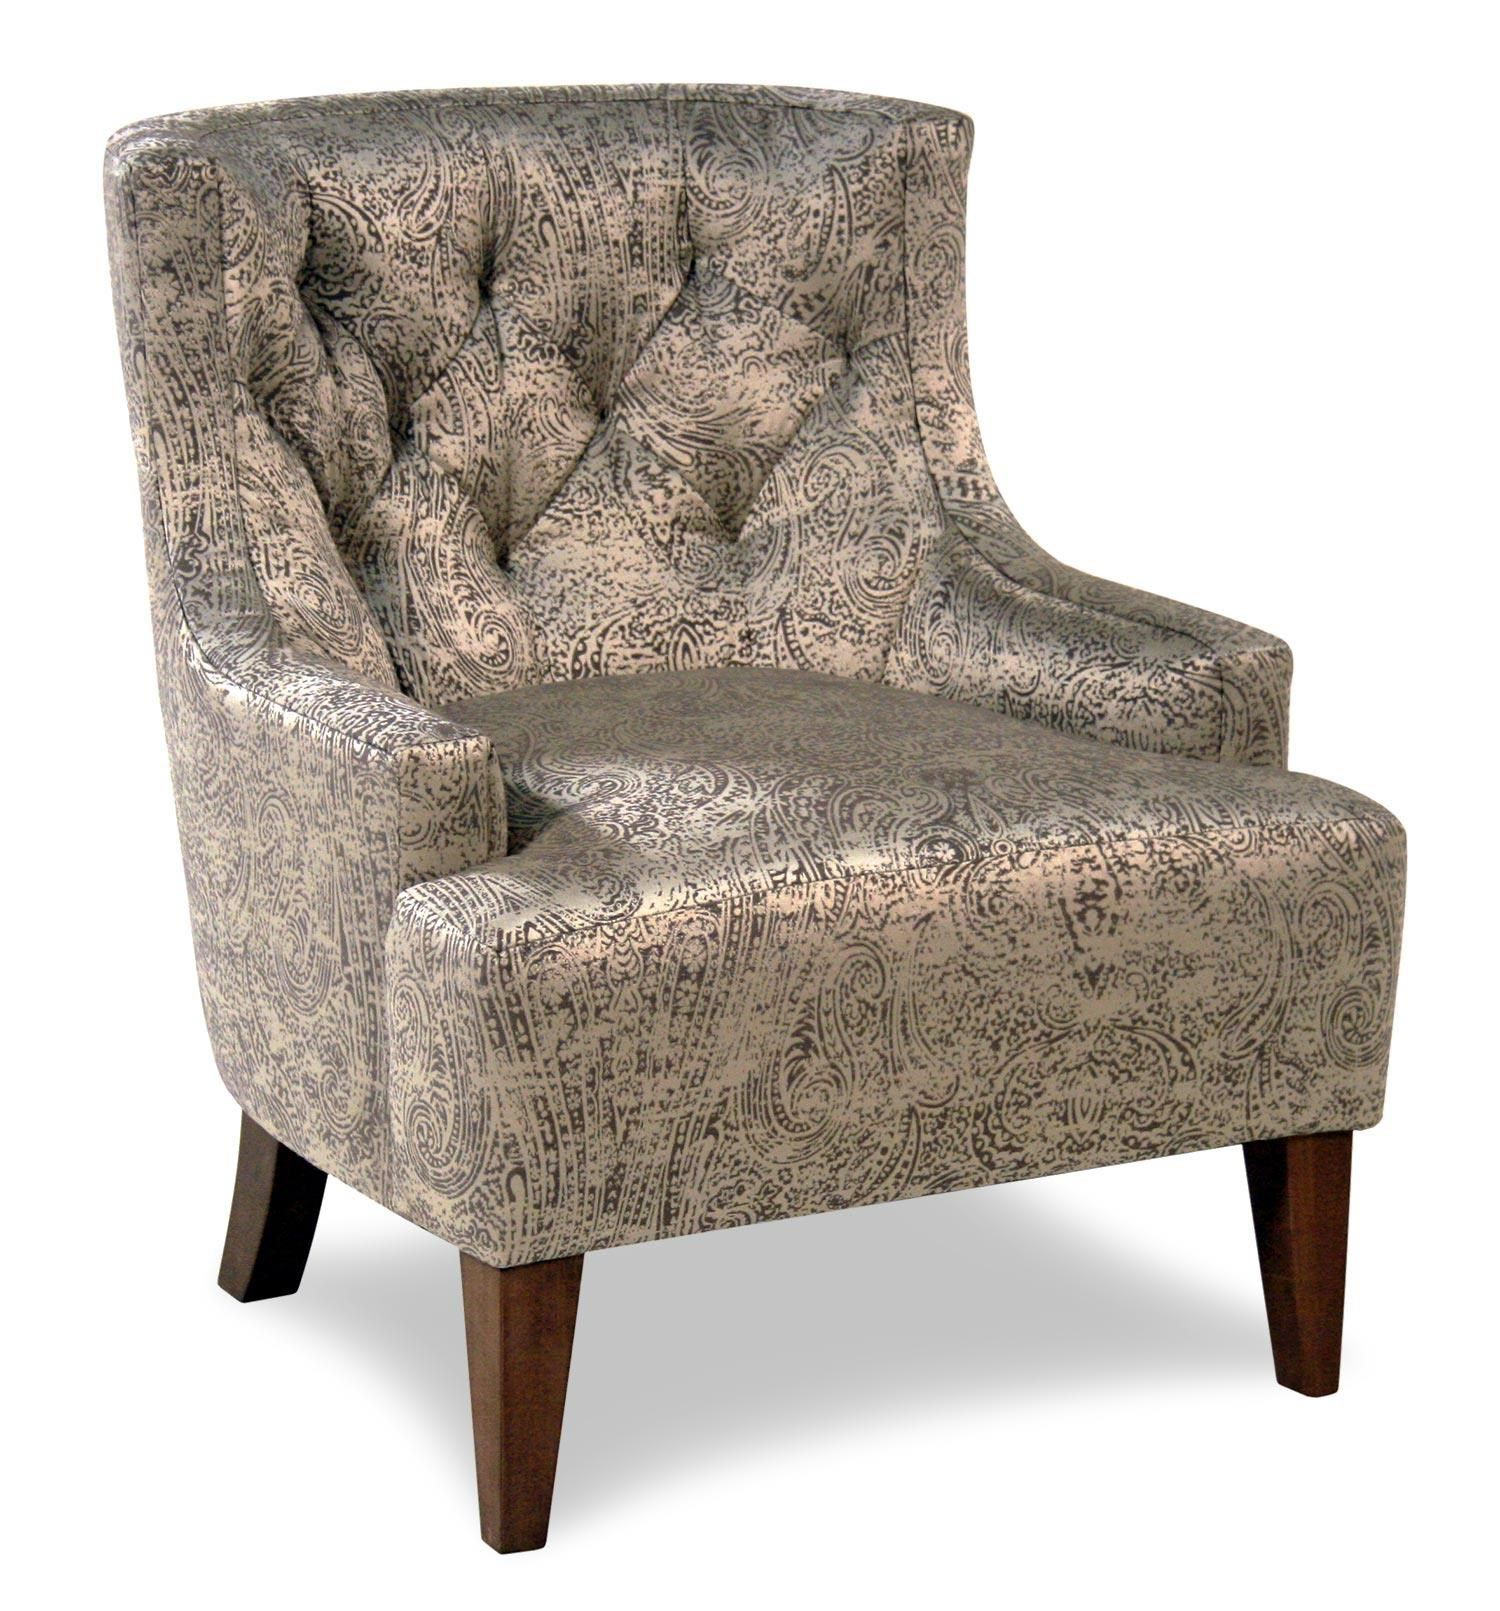 Tremendous Accentuates Tufted Accent Chair By Jonathan Louis Living Pabps2019 Chair Design Images Pabps2019Com